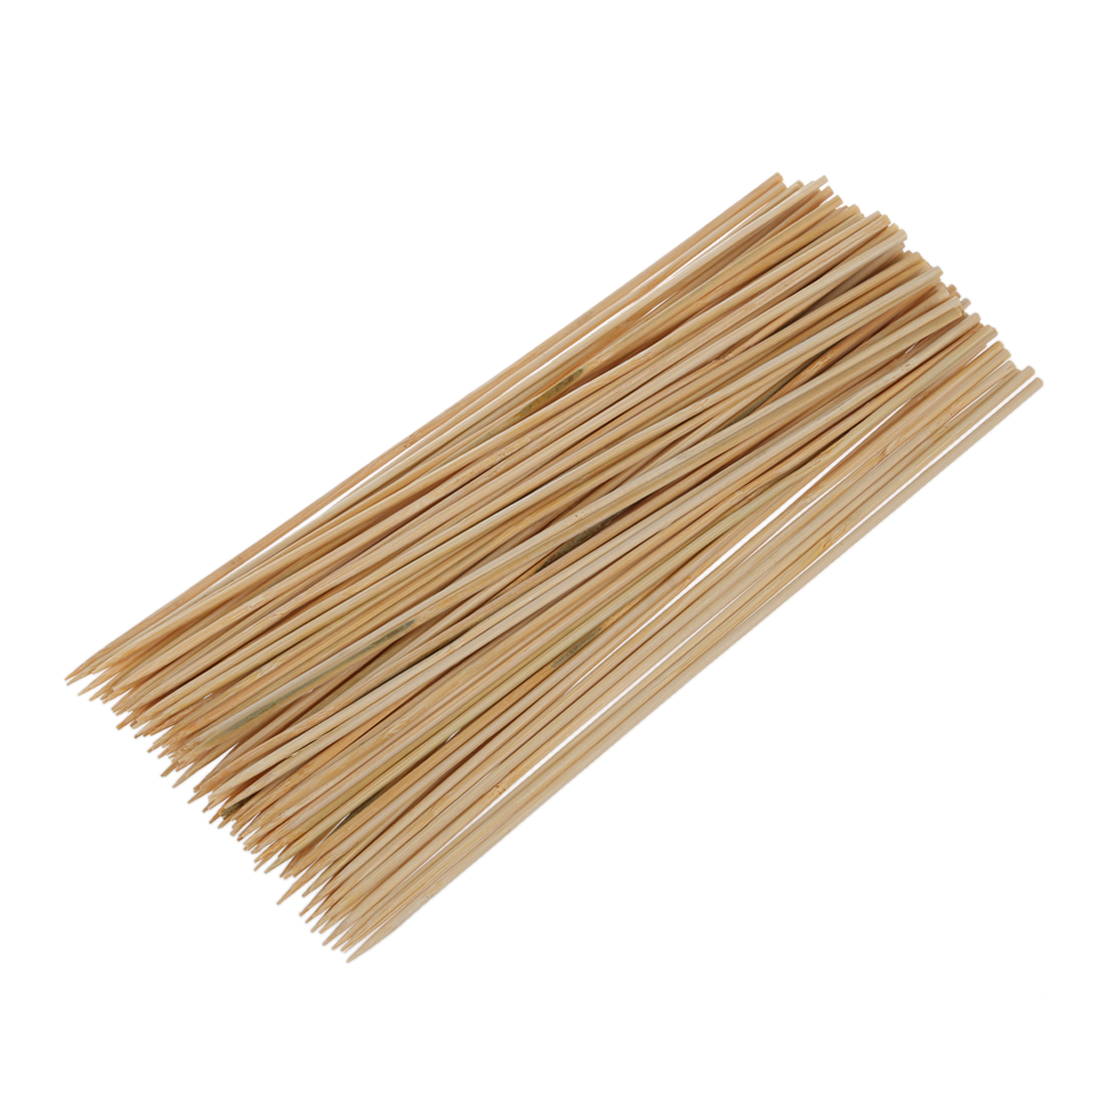 Practical Camping Wooden Color Bamboo BBQ Skewers Barbecue Shish Kabob Sticks 95 Pcs